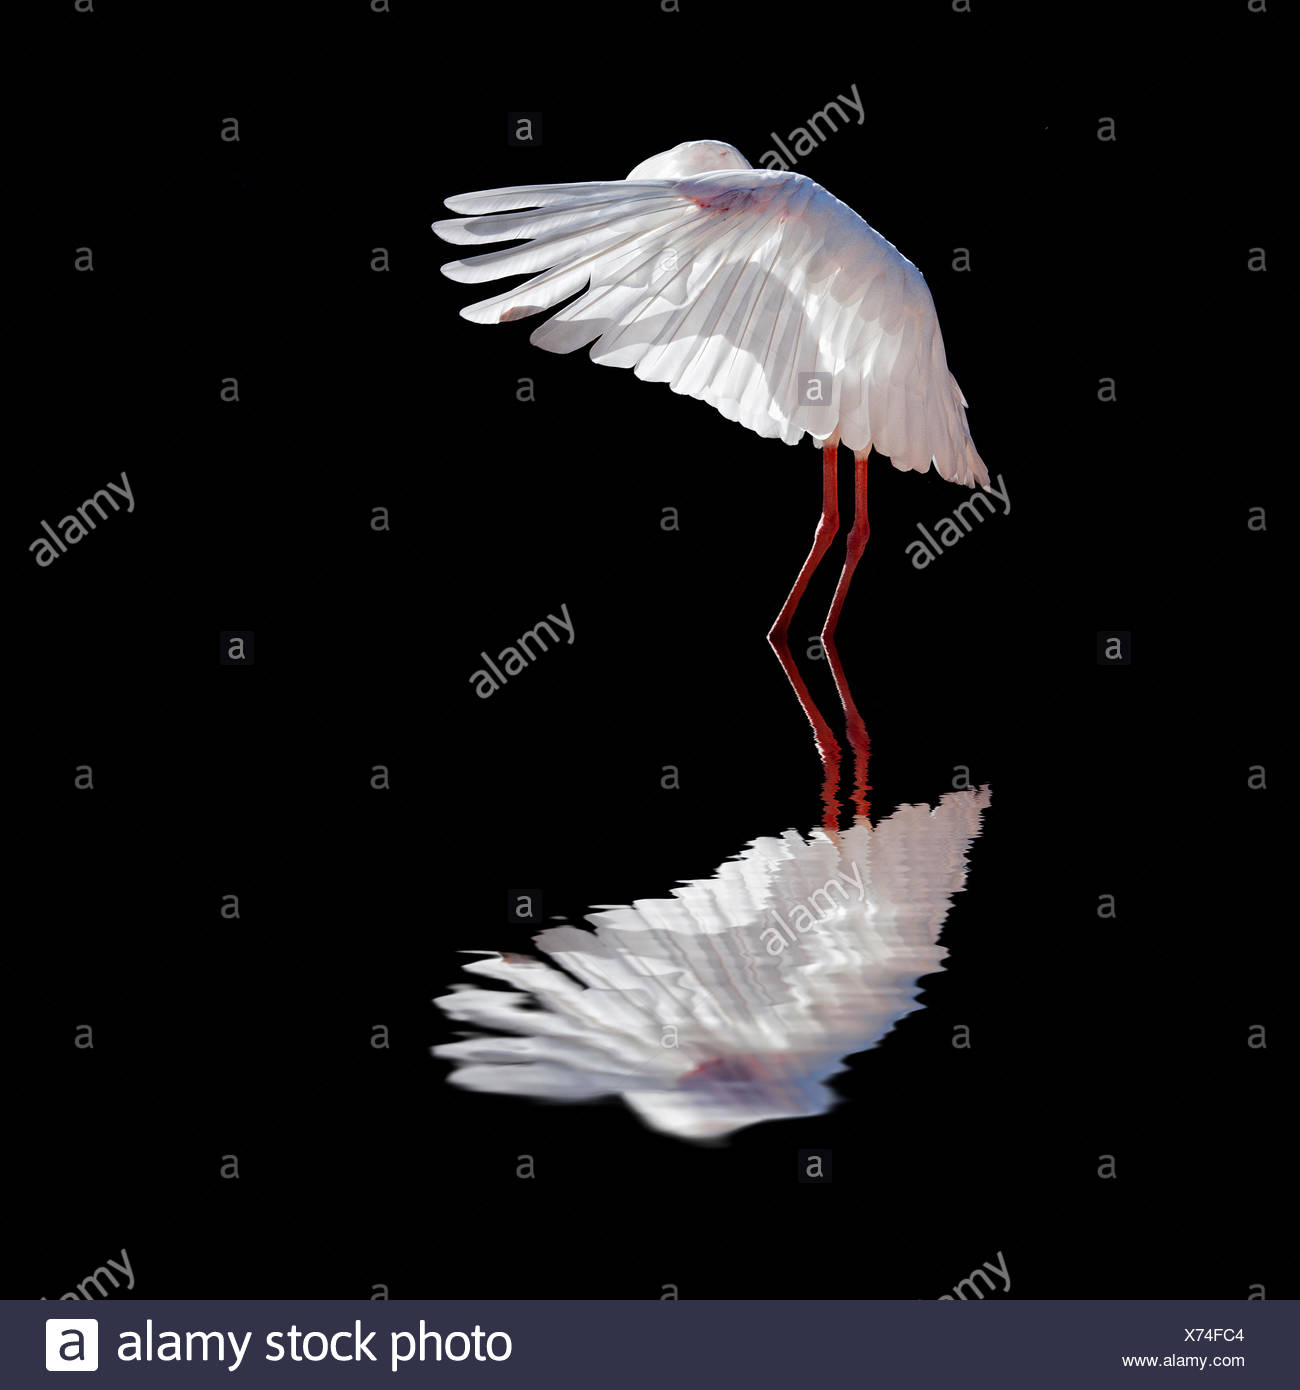 Reflection of a white bird in water with black background - Stock Image